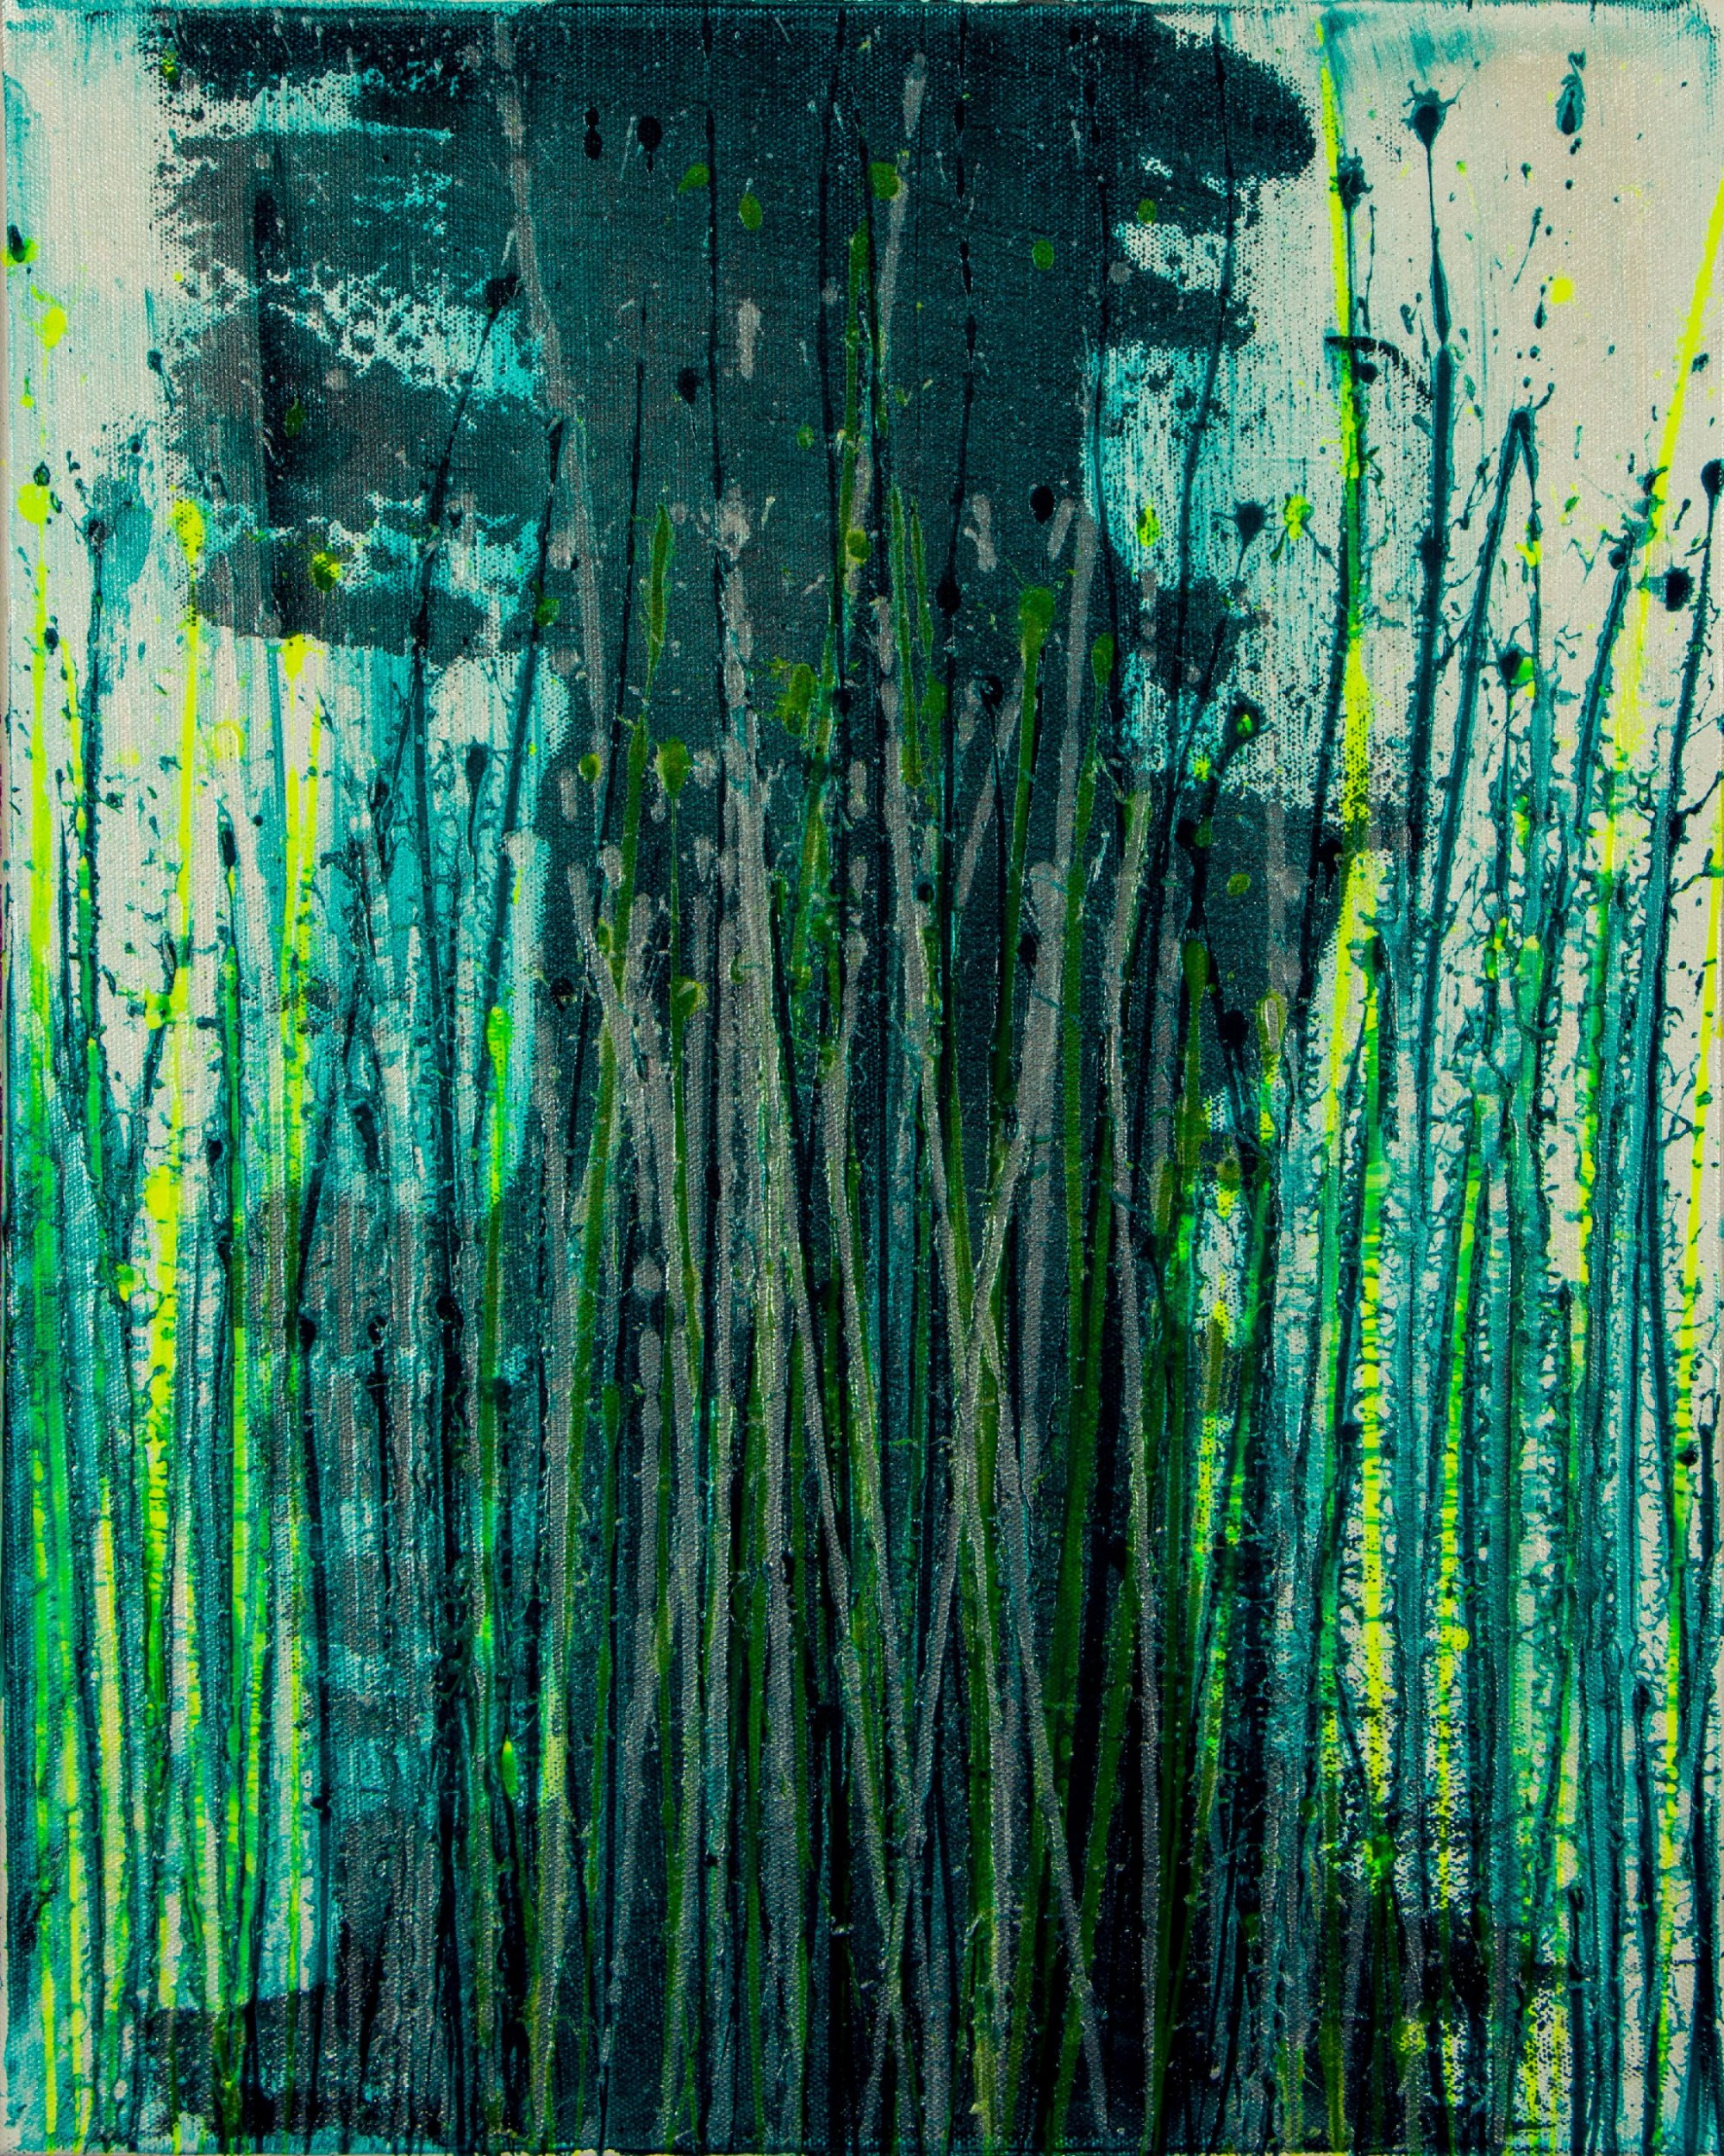 Canvas 2 - Vernal Garden (With Green and Silver) (2021) - Triptych